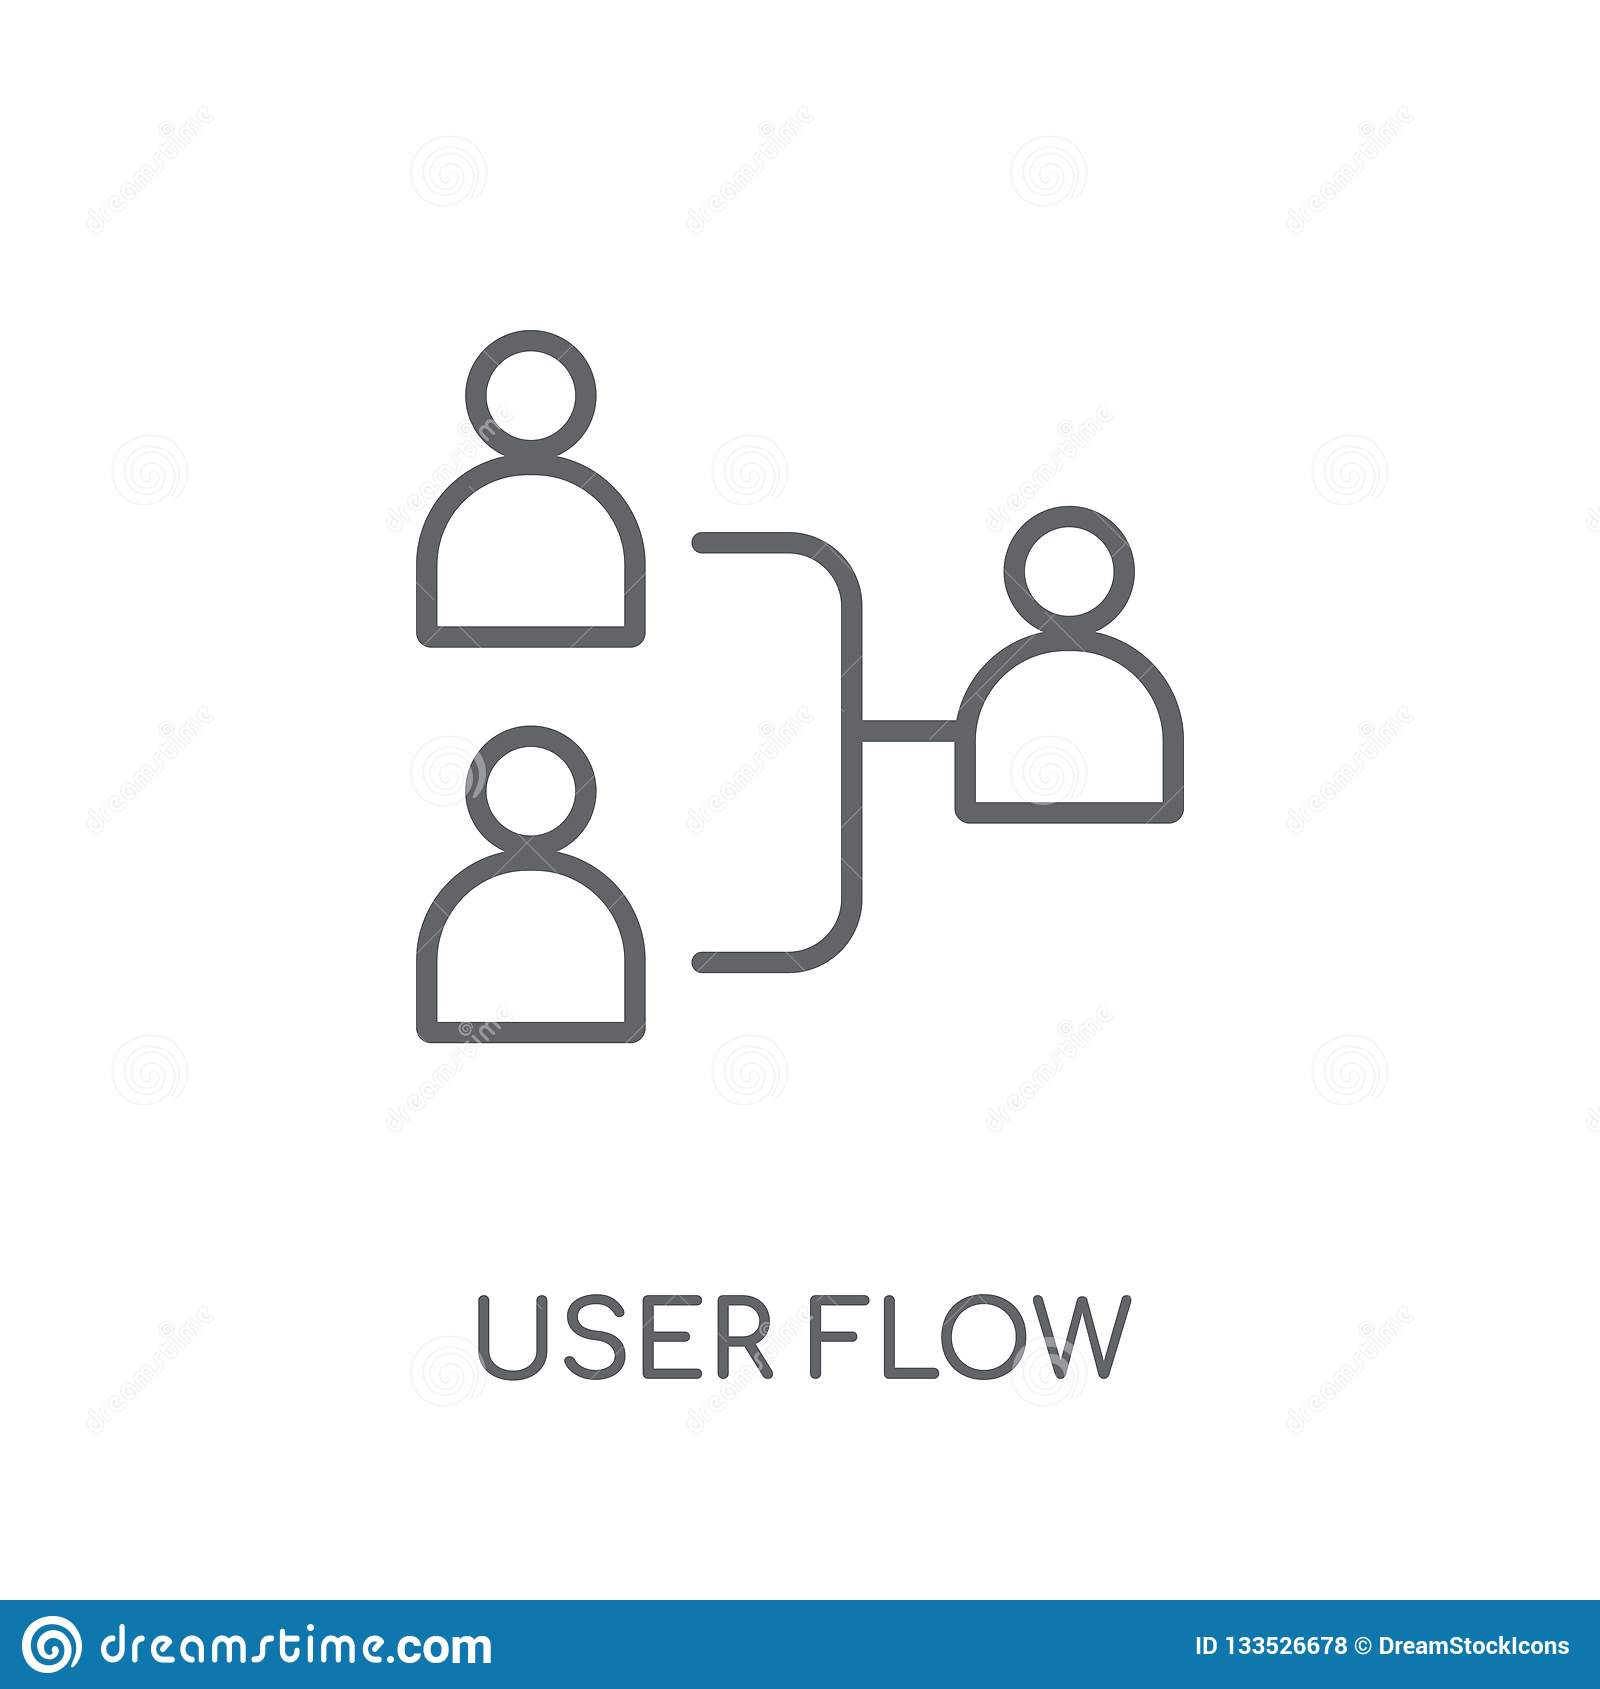 User flow linear icon. Modern outline User flow logo concept on